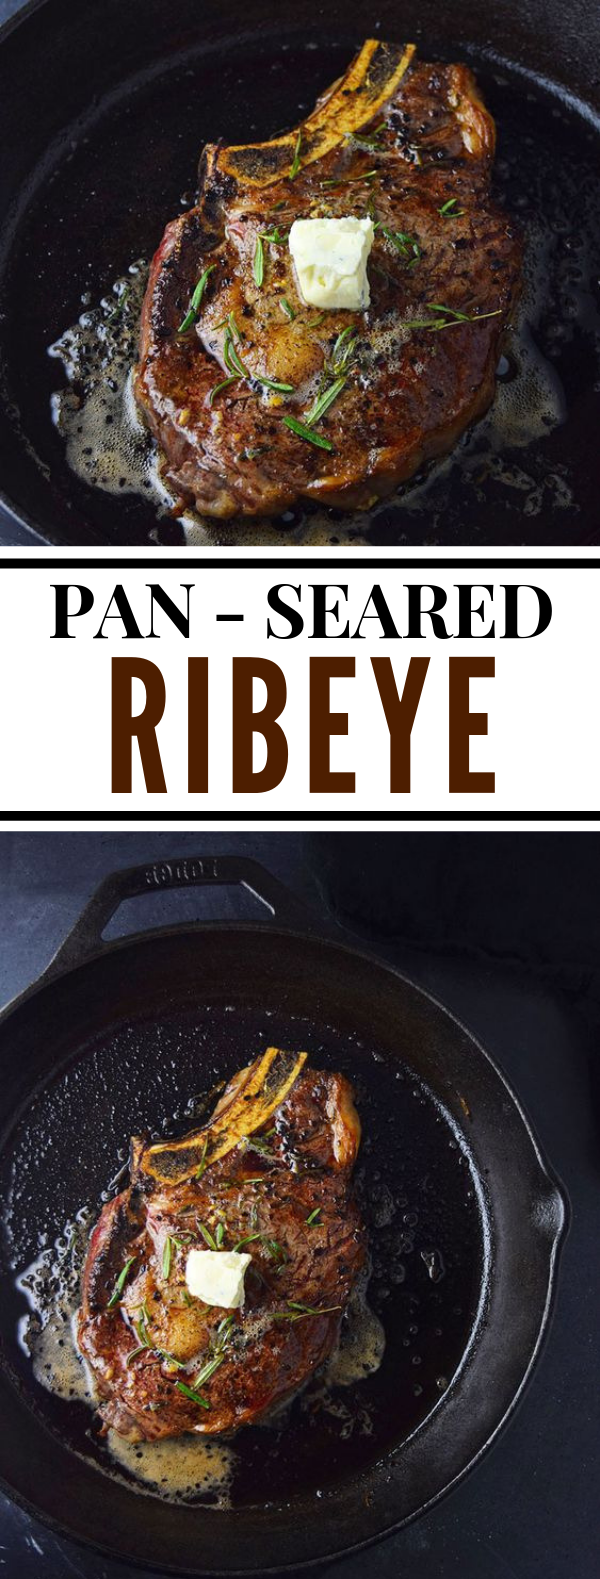 Pan-Seared Ribeye Steak with Blue Cheese Butter Recipe #dinner #beef